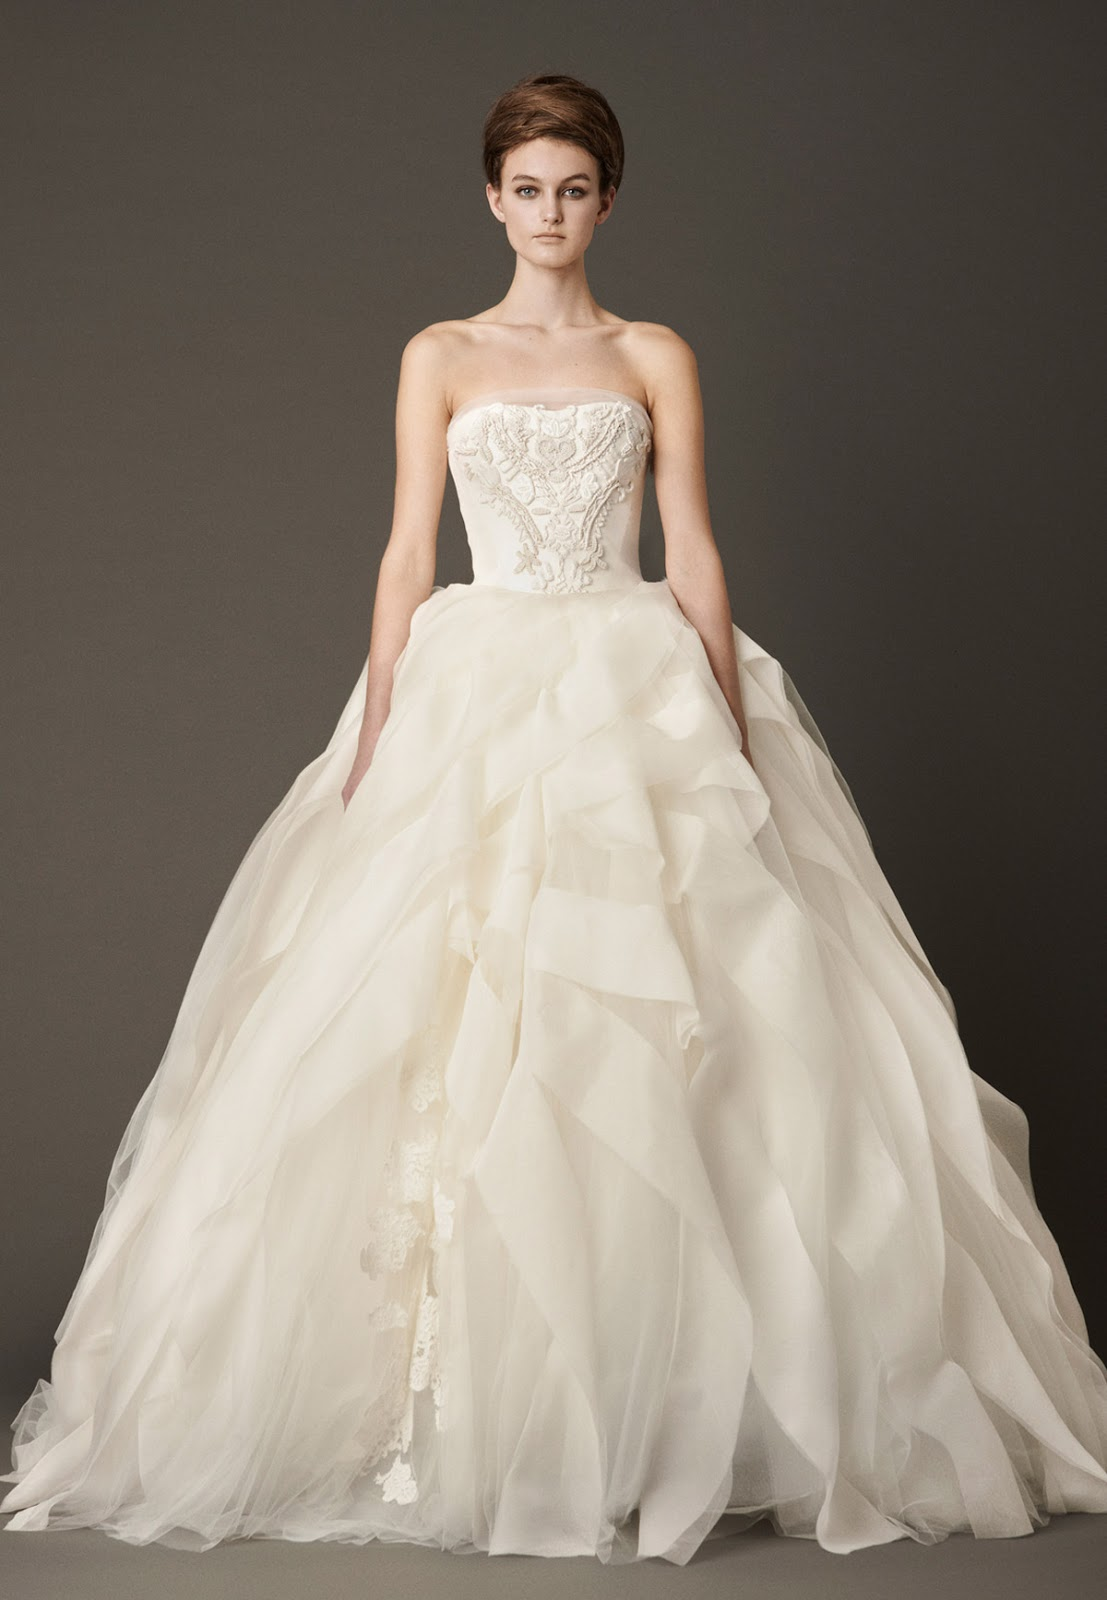 Dressybridal vera wang fall 2013 ruffled wedding gowns for Vera wang wedding dress used